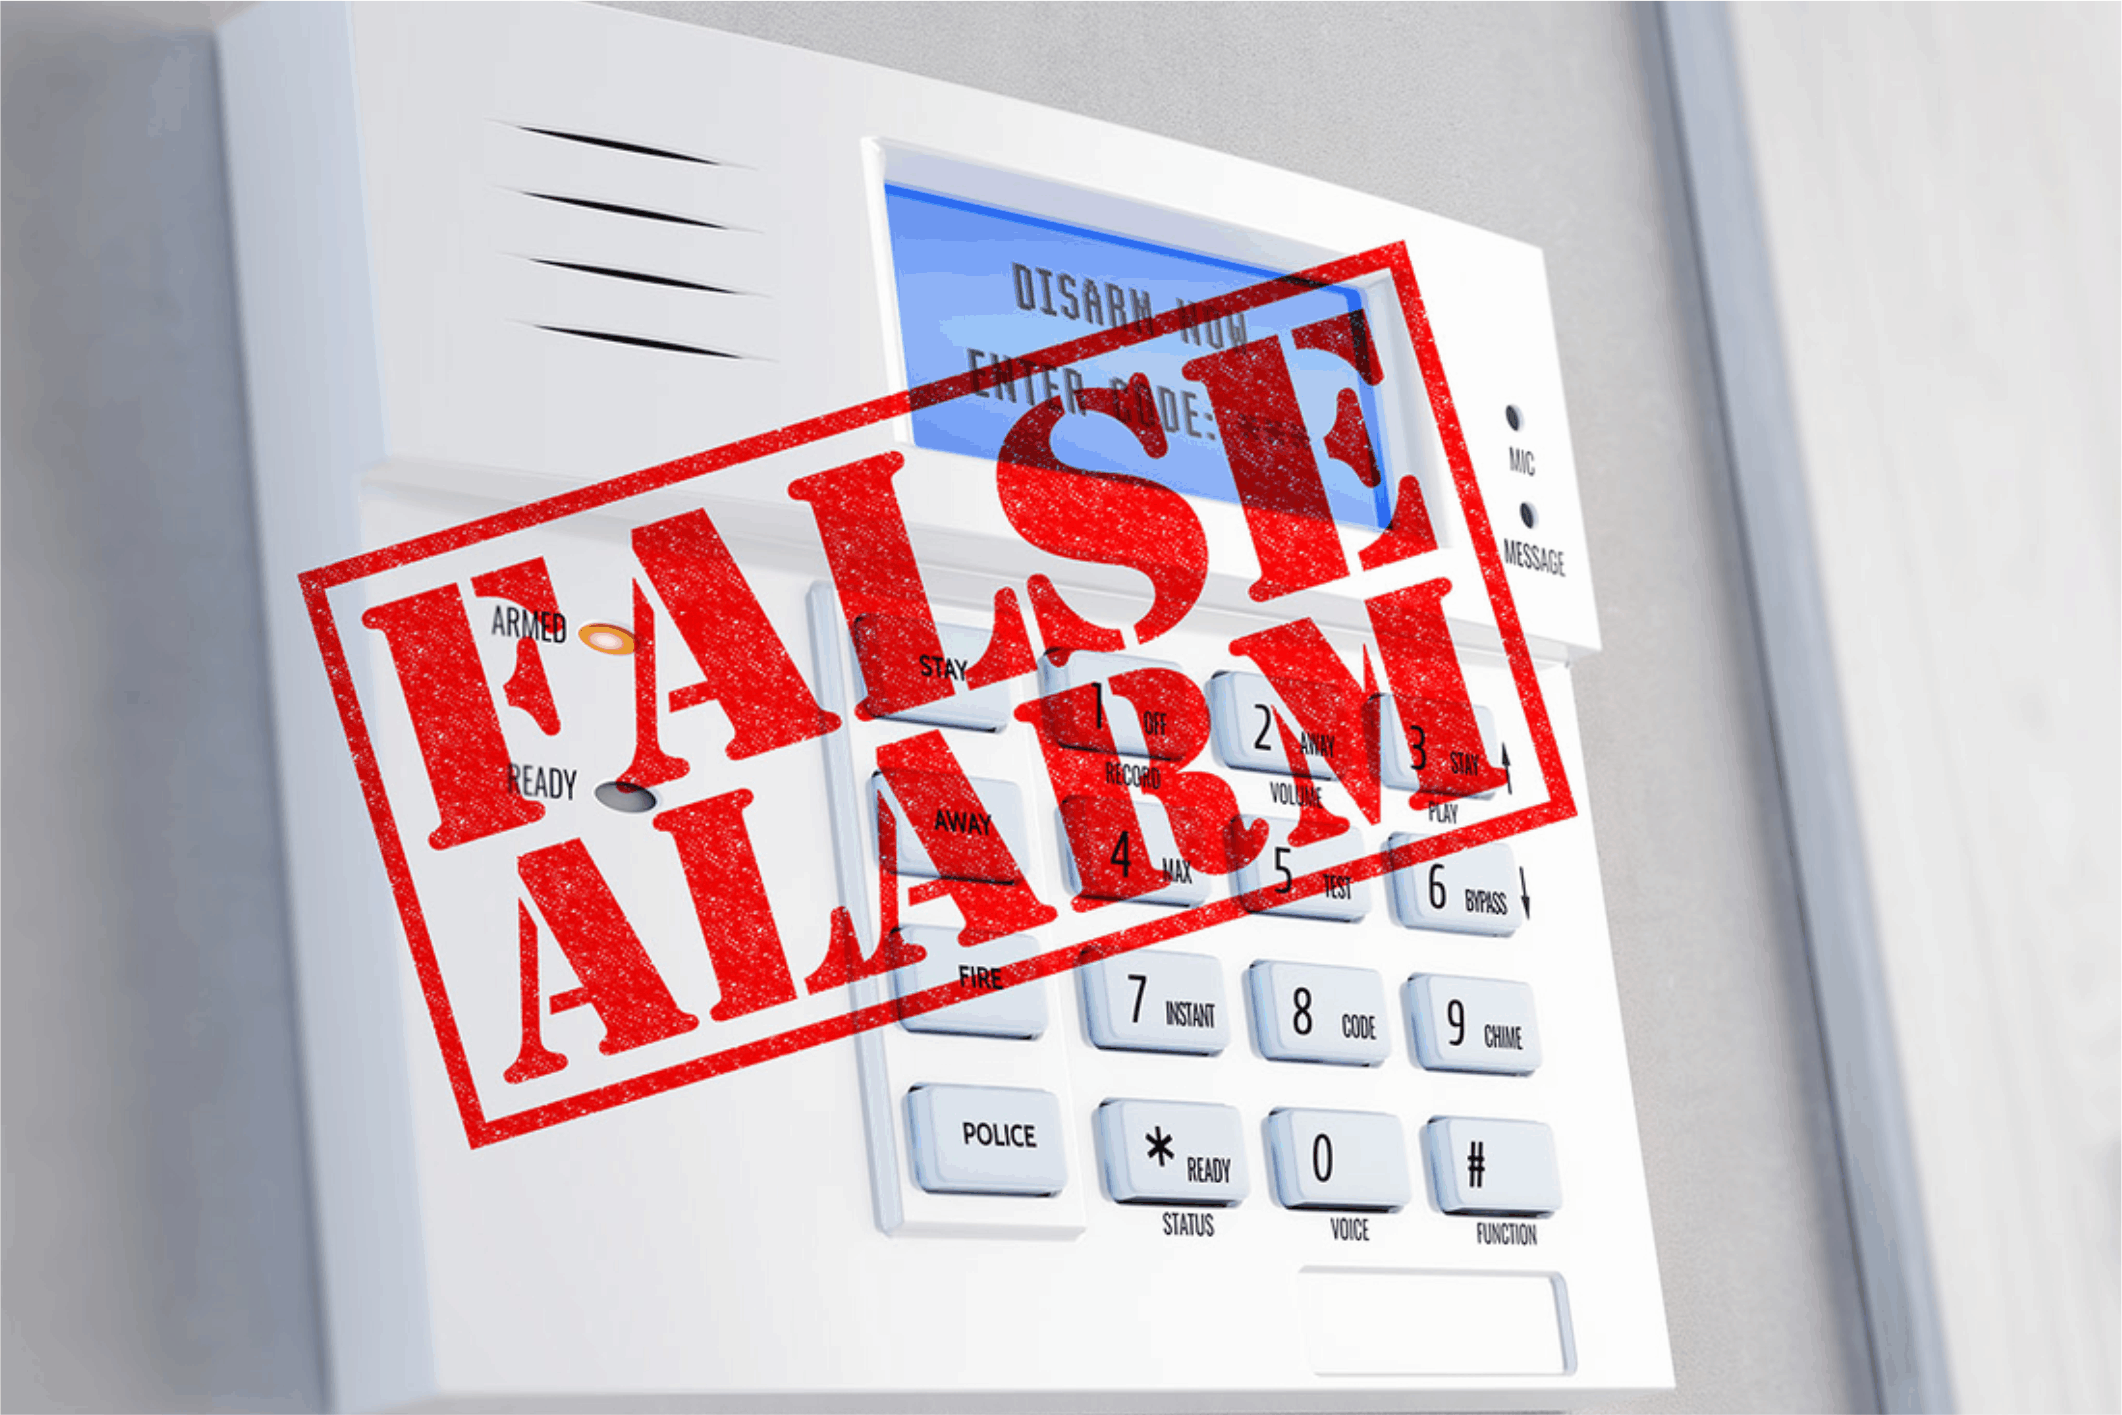 Less False Alarms